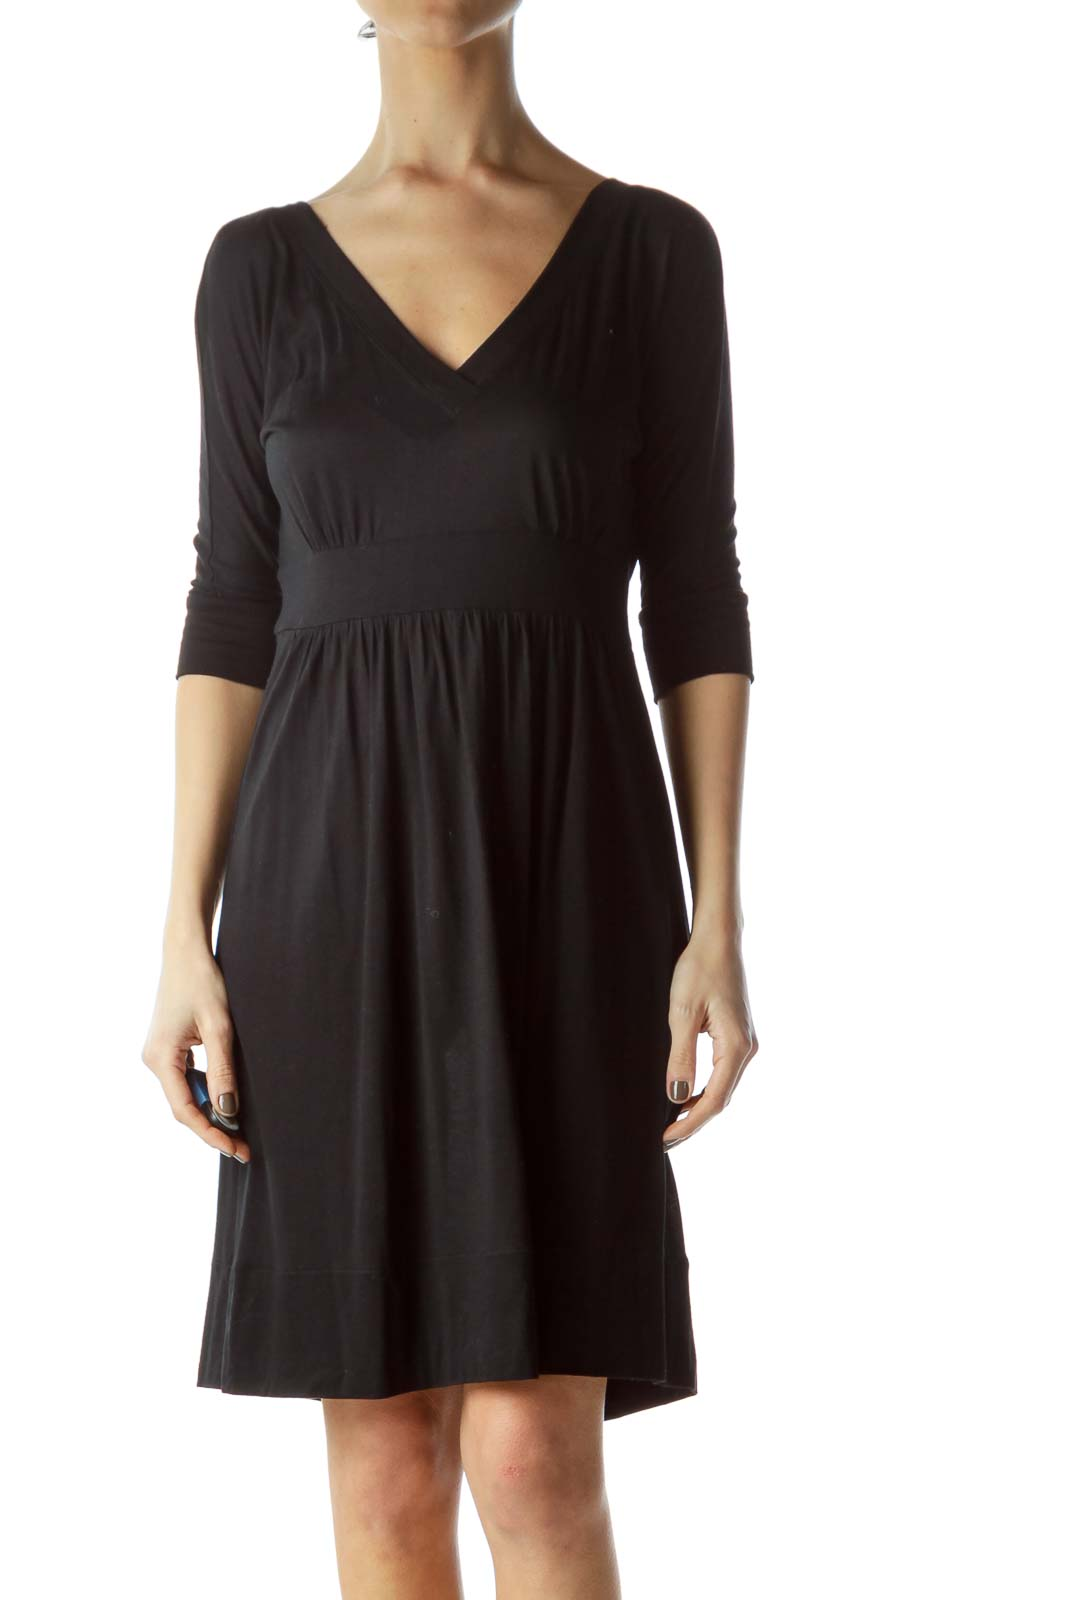 Black V-Neck Jersey-Knit 3/4 Sleeve Day Dress